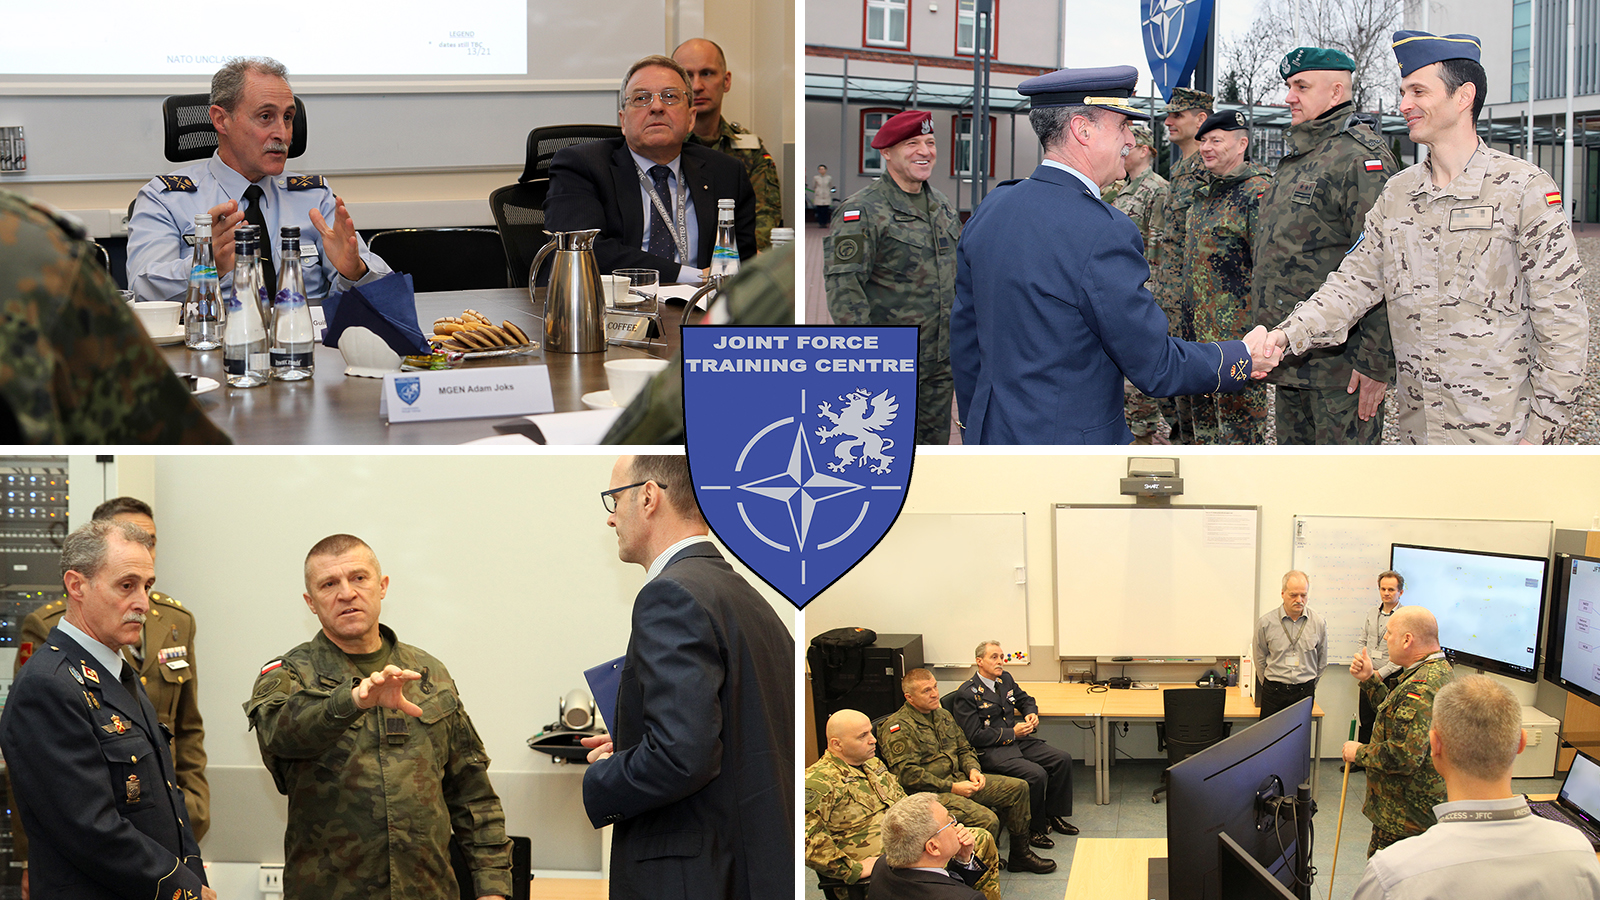 Allied Command Transformation's Deputy Chief of Staff Joint Force Development Explores JFTC